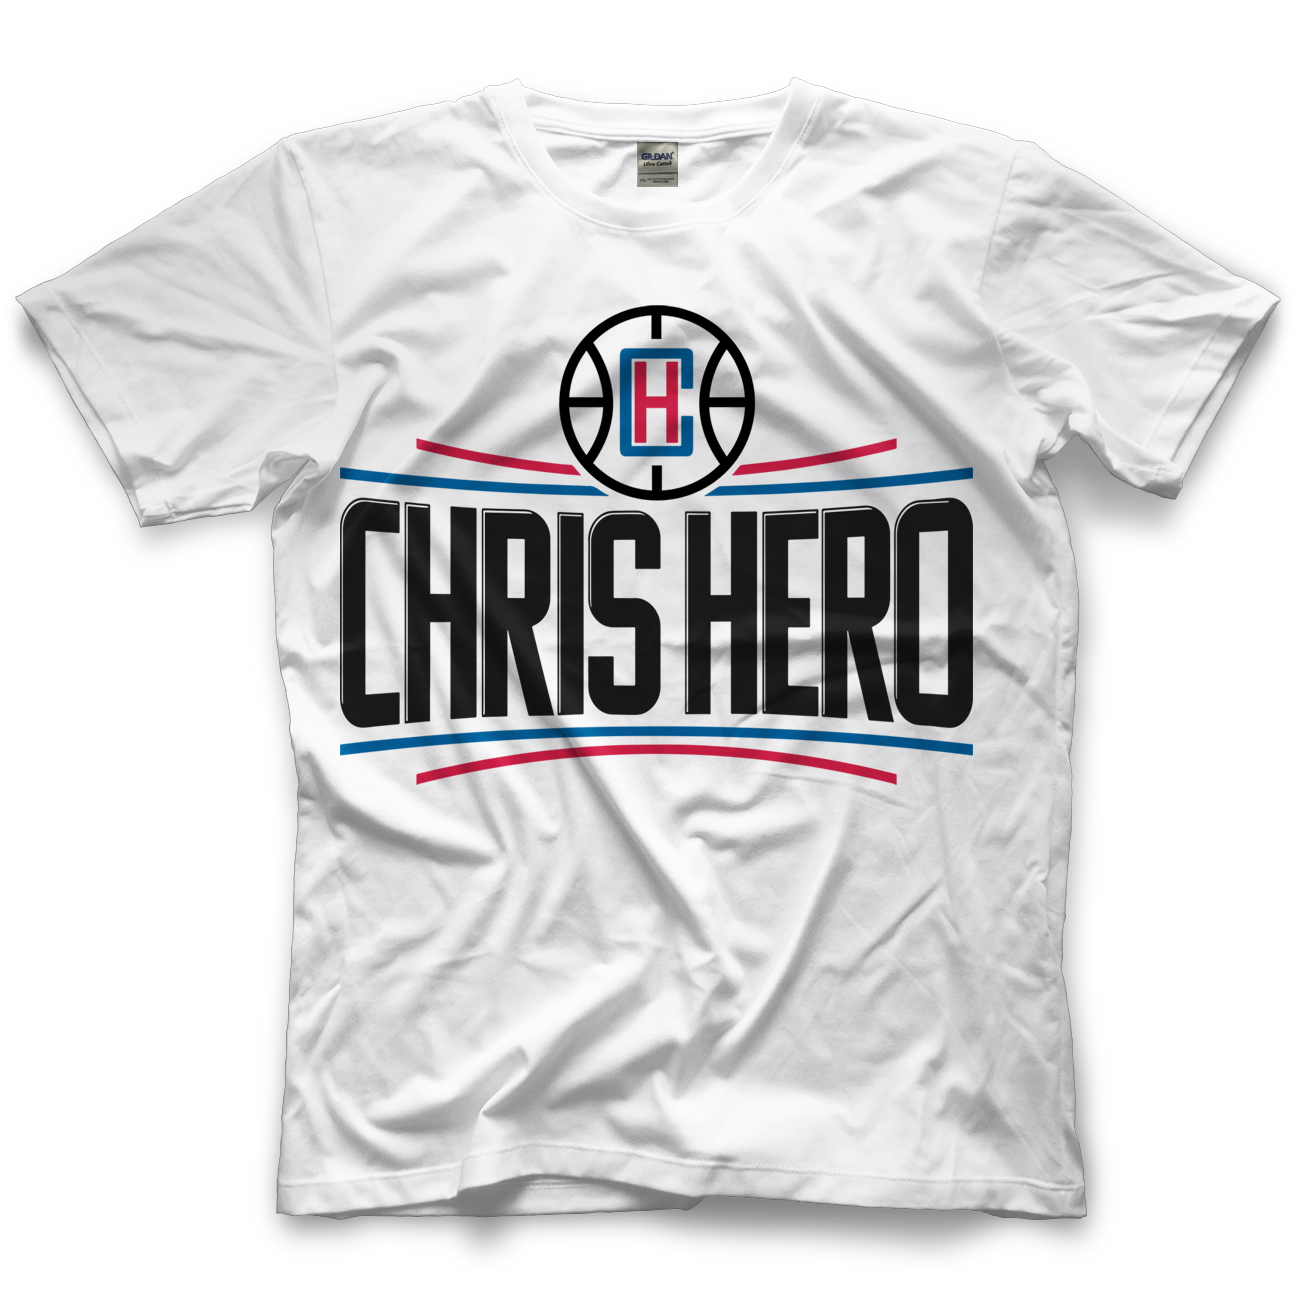 Chris Hero Clippers T-shirt